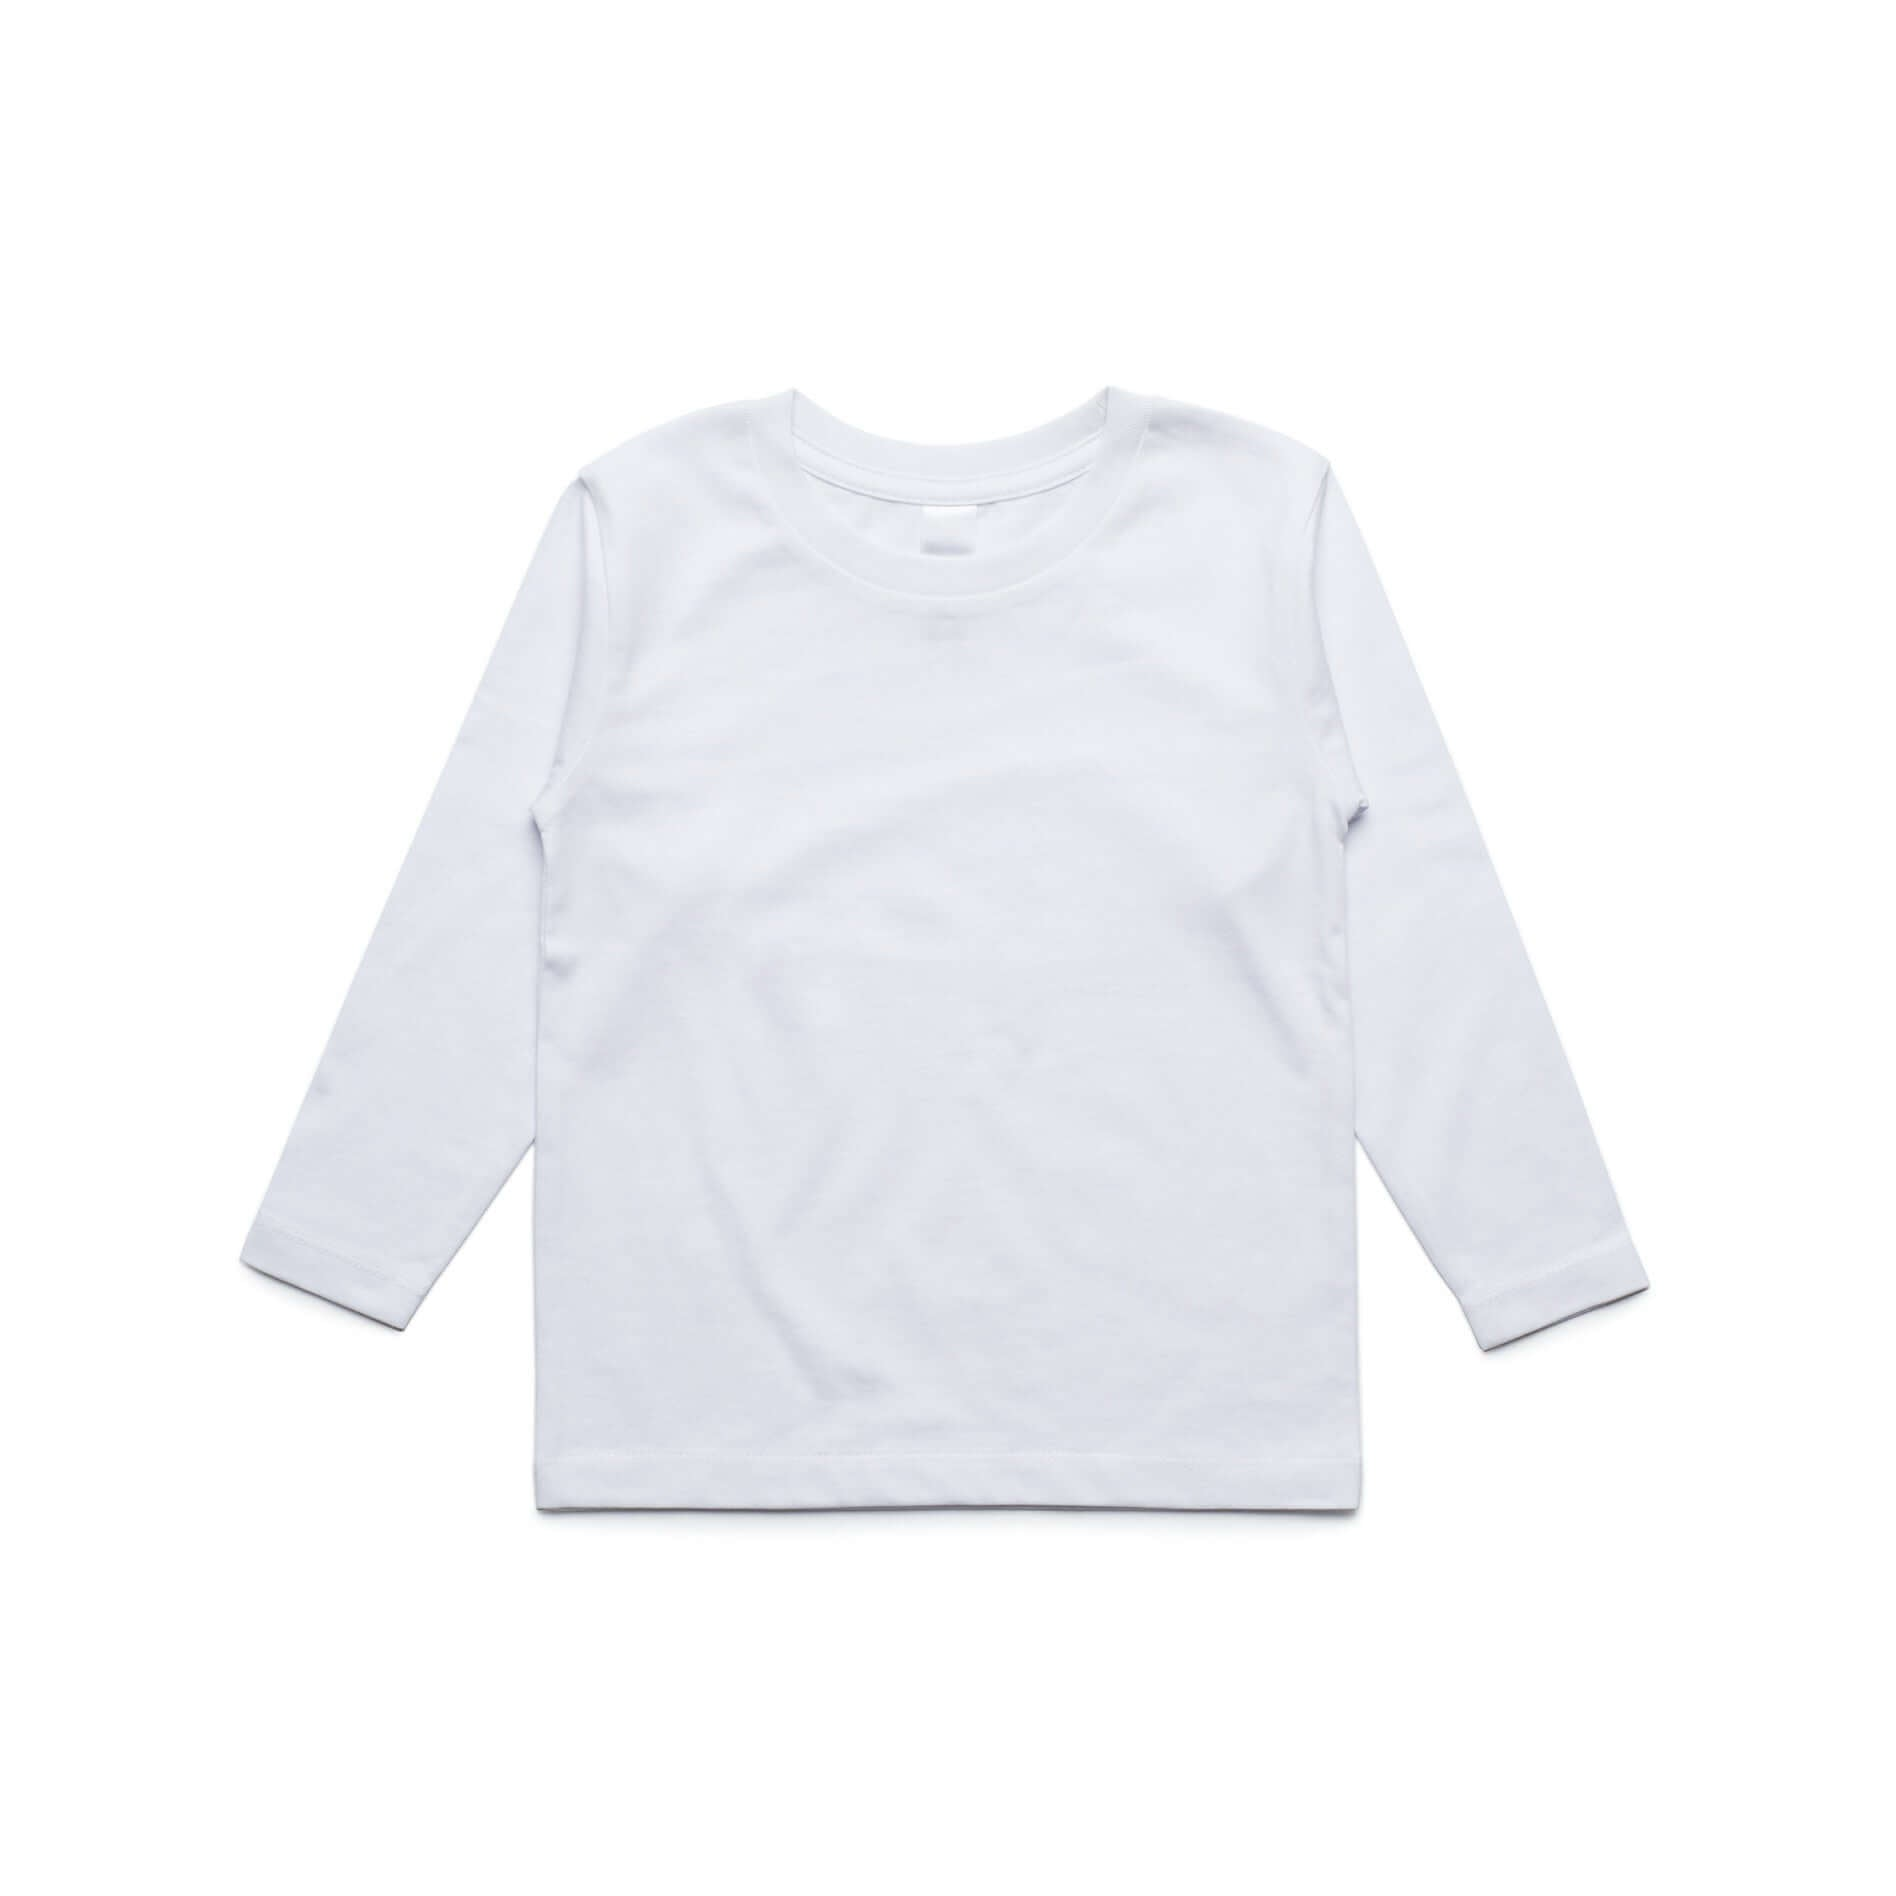 AS Colour Kids Cotton Long Sleeve Basic Tee Shirt White, Black and Grey Marl - Frankie's Story - 1